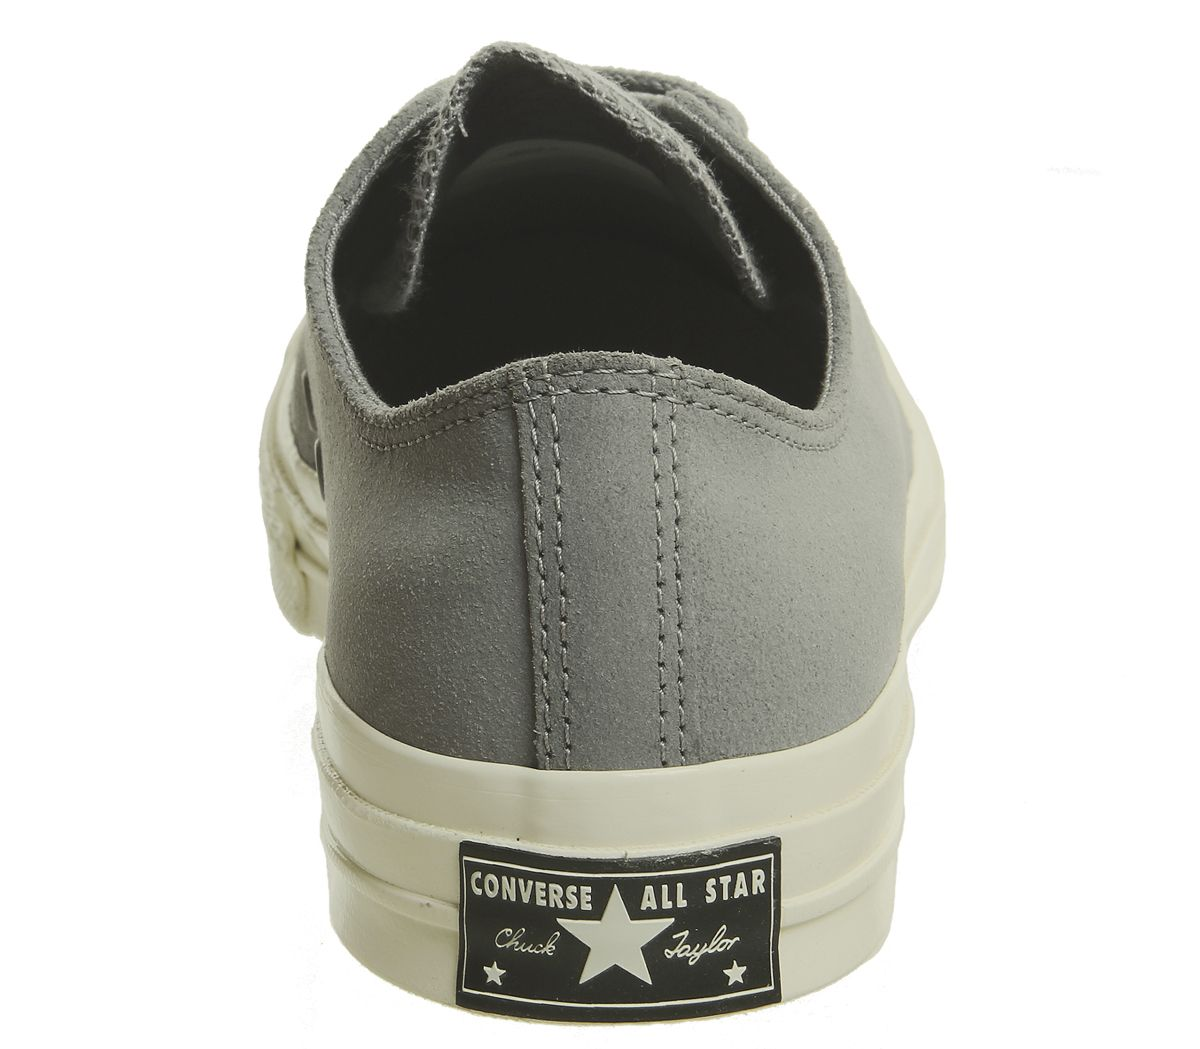 e6ac617d261d76 Converse All Star Ox 70 s Trainers Mason Mason Egret - His trainers